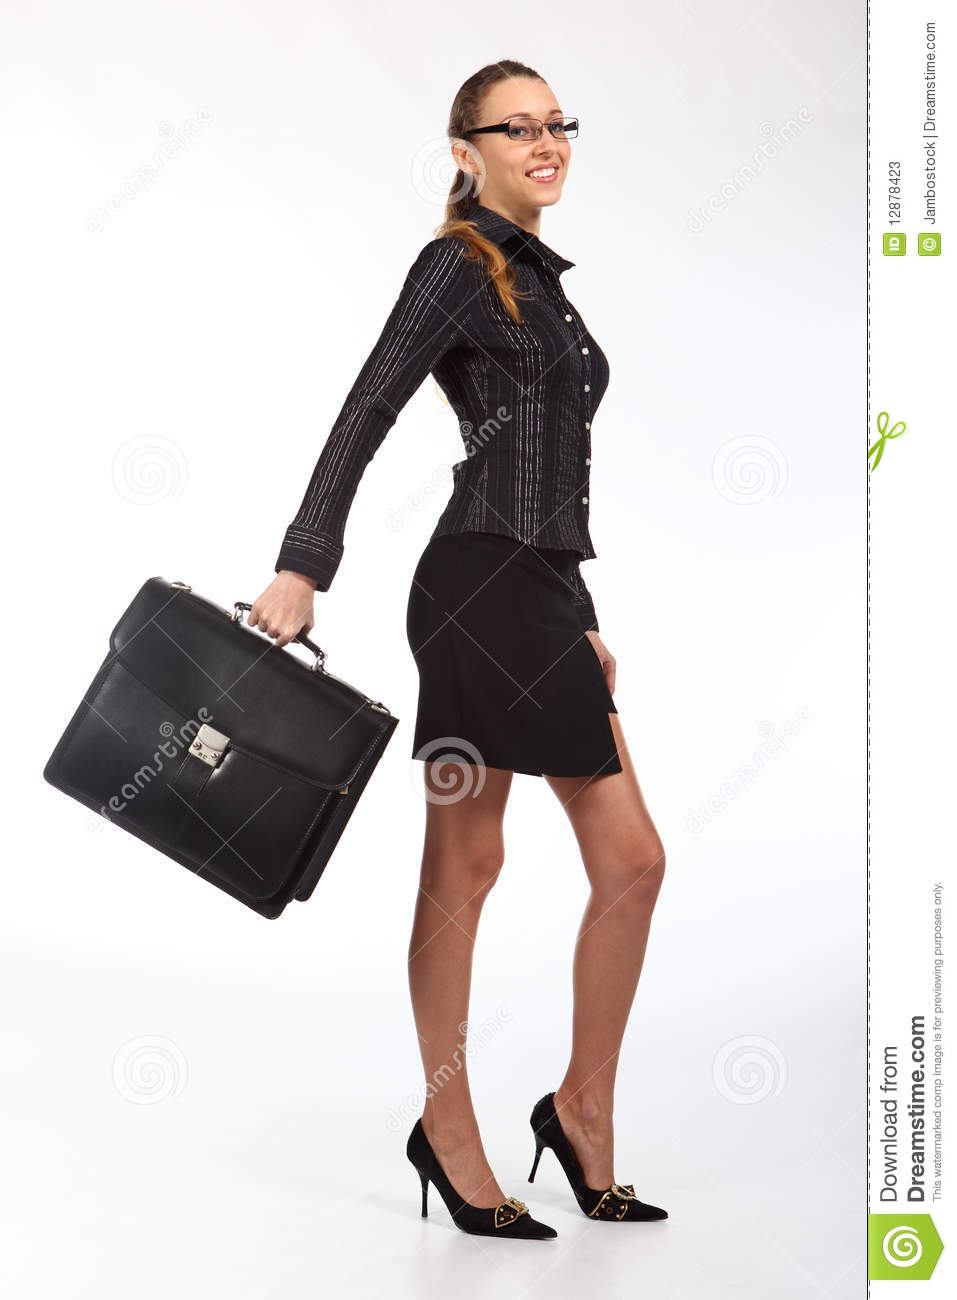 business-woman-black-briefcase-12878423.